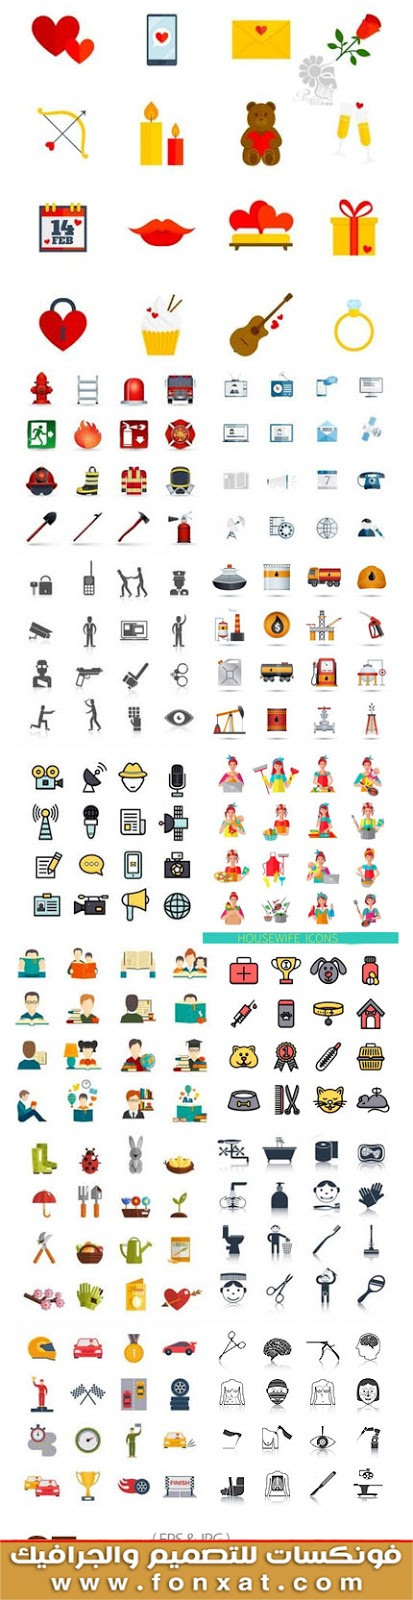 Download set of vector illustrations of various icons3